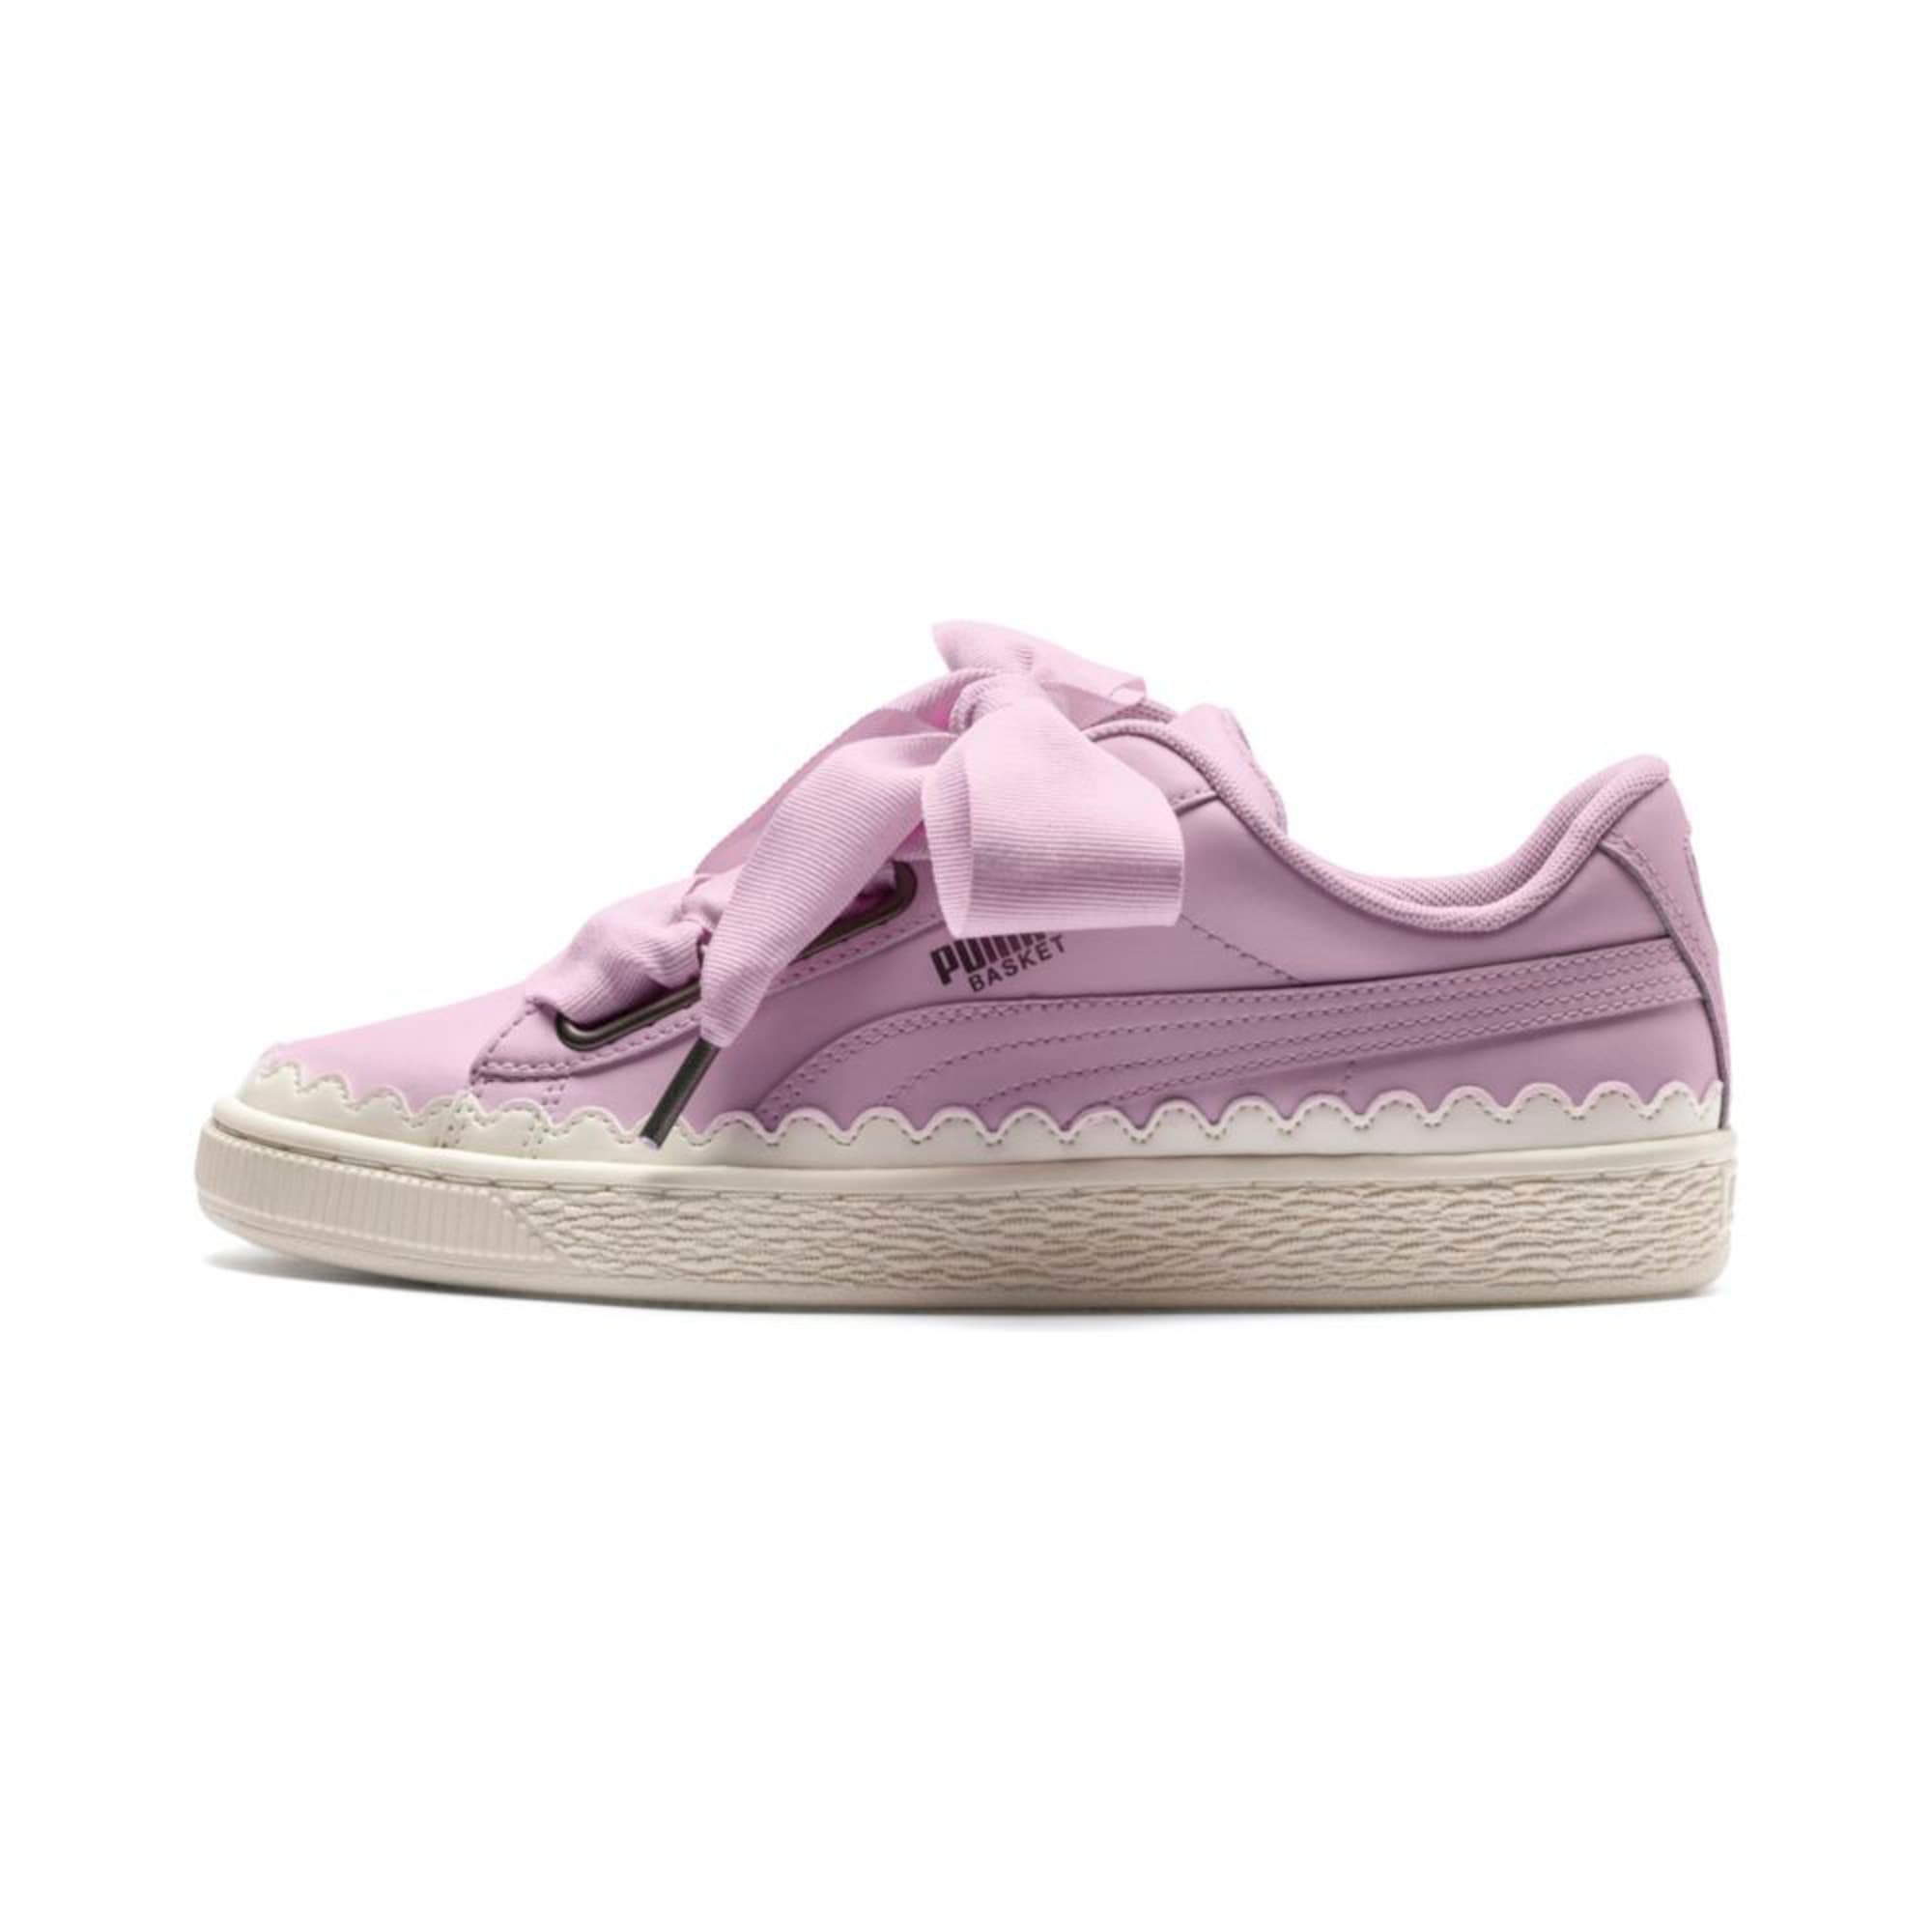 Thumbnail 1 of Basket Heart Scallop Women's Trainers, Winsome Orchid, medium-IND